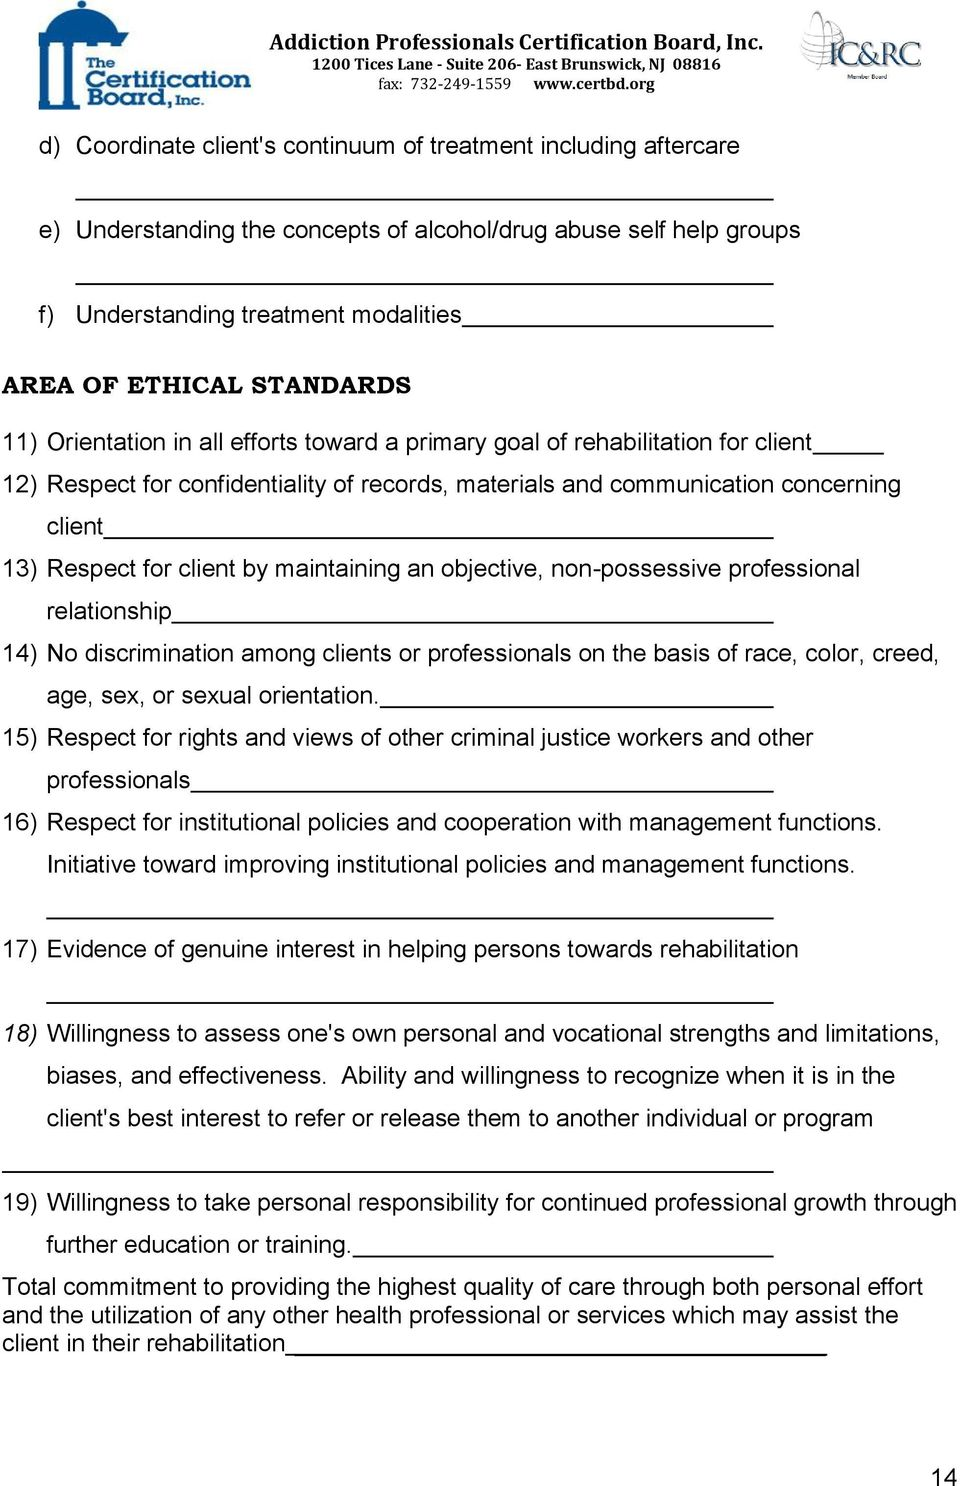 maintaining an objective, non-possessive professional relationship 14) No discrimination among clients or professionals on the basis of race, color, creed, age, sex, or sexual orientation.